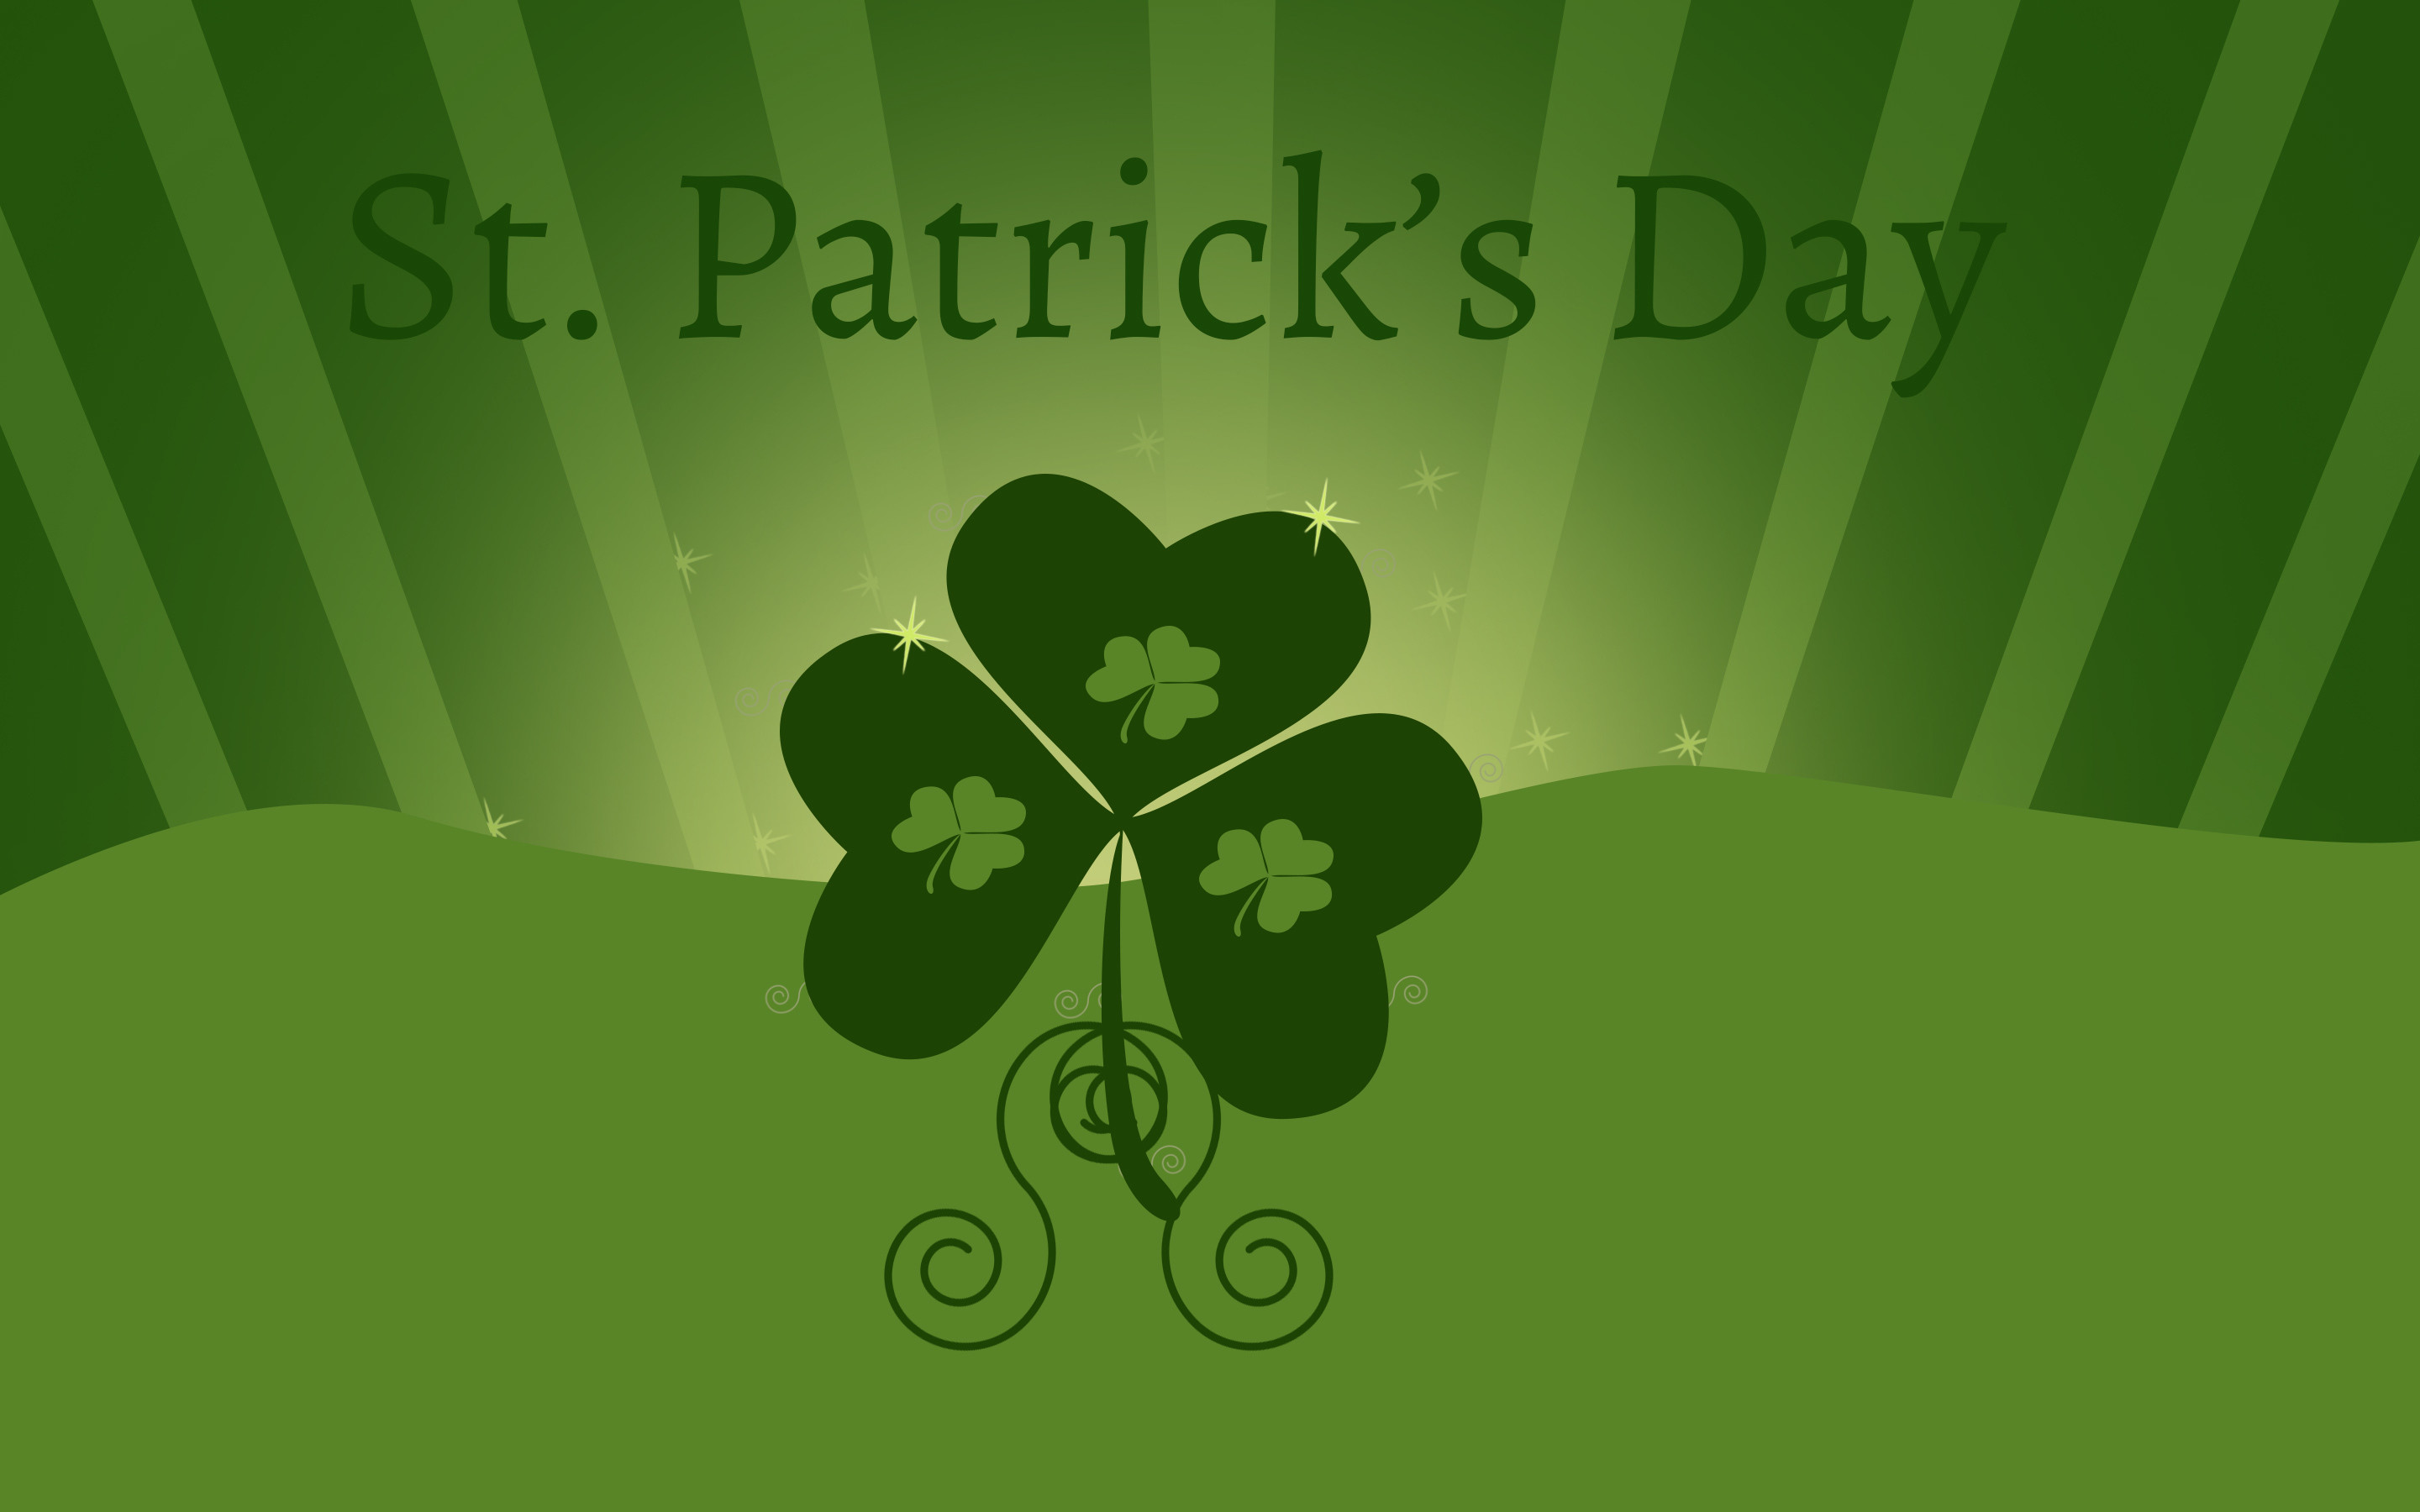 Holiday – St. Patrick's Day Clover Green Wallpaper